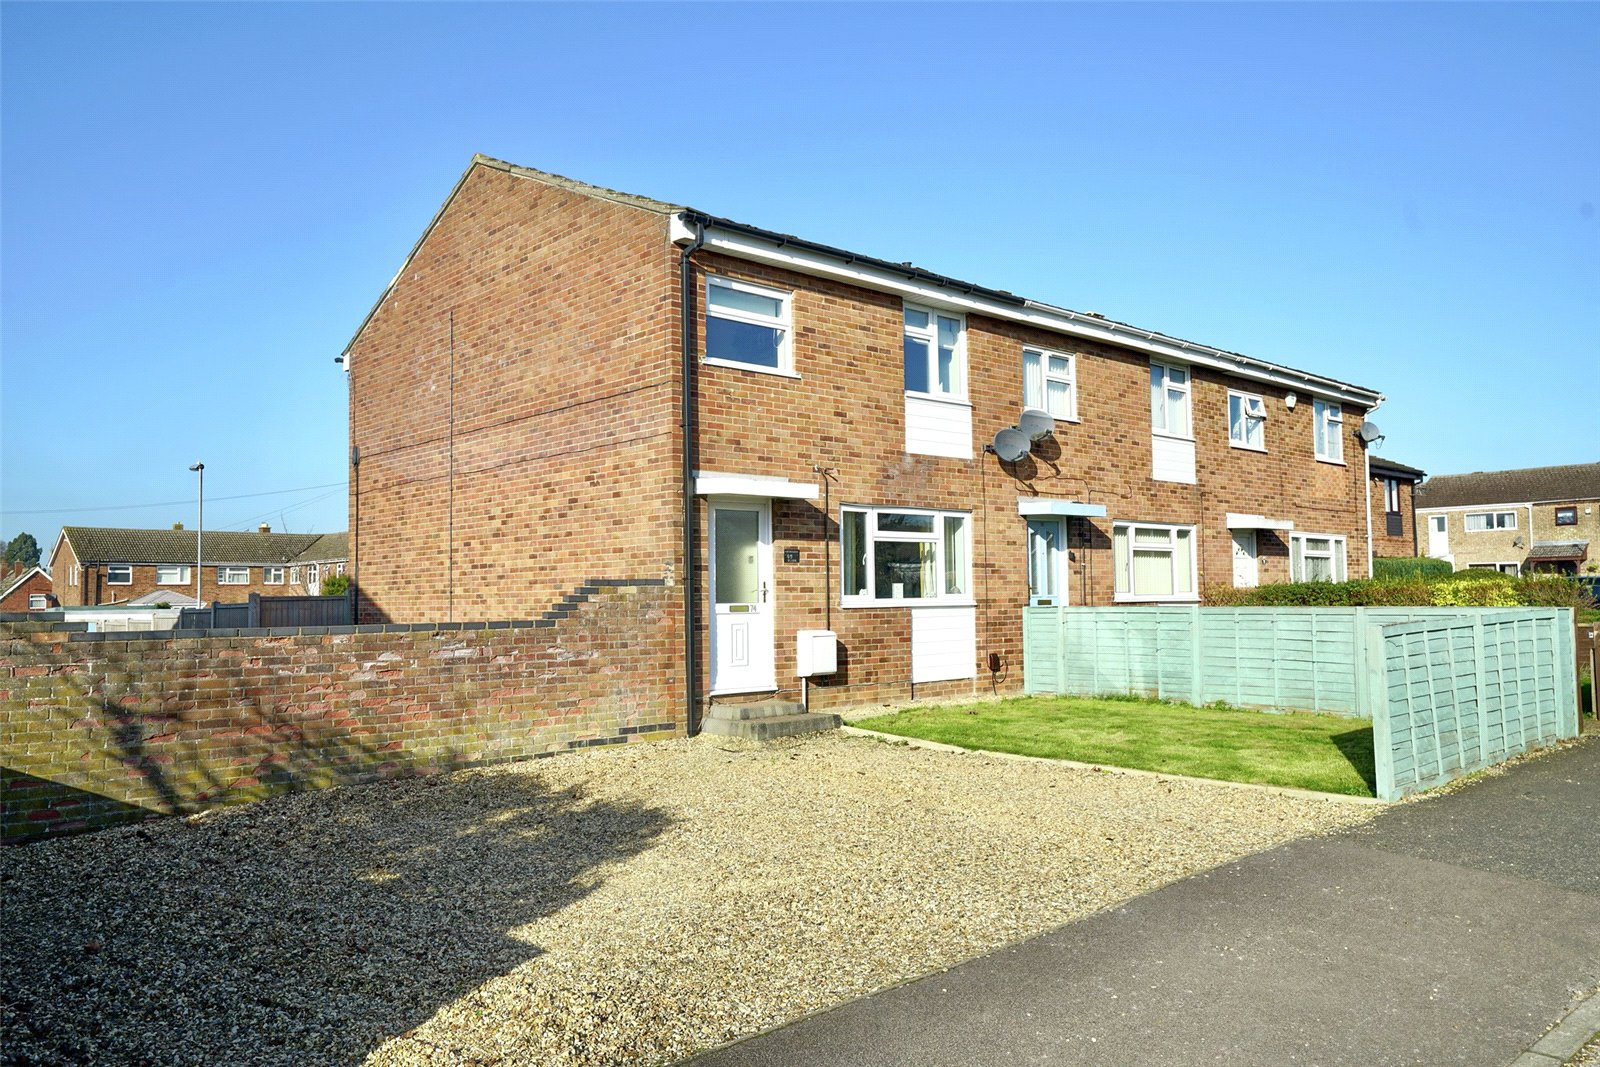 3 bed house for sale in Henbrook, St. Neots 0